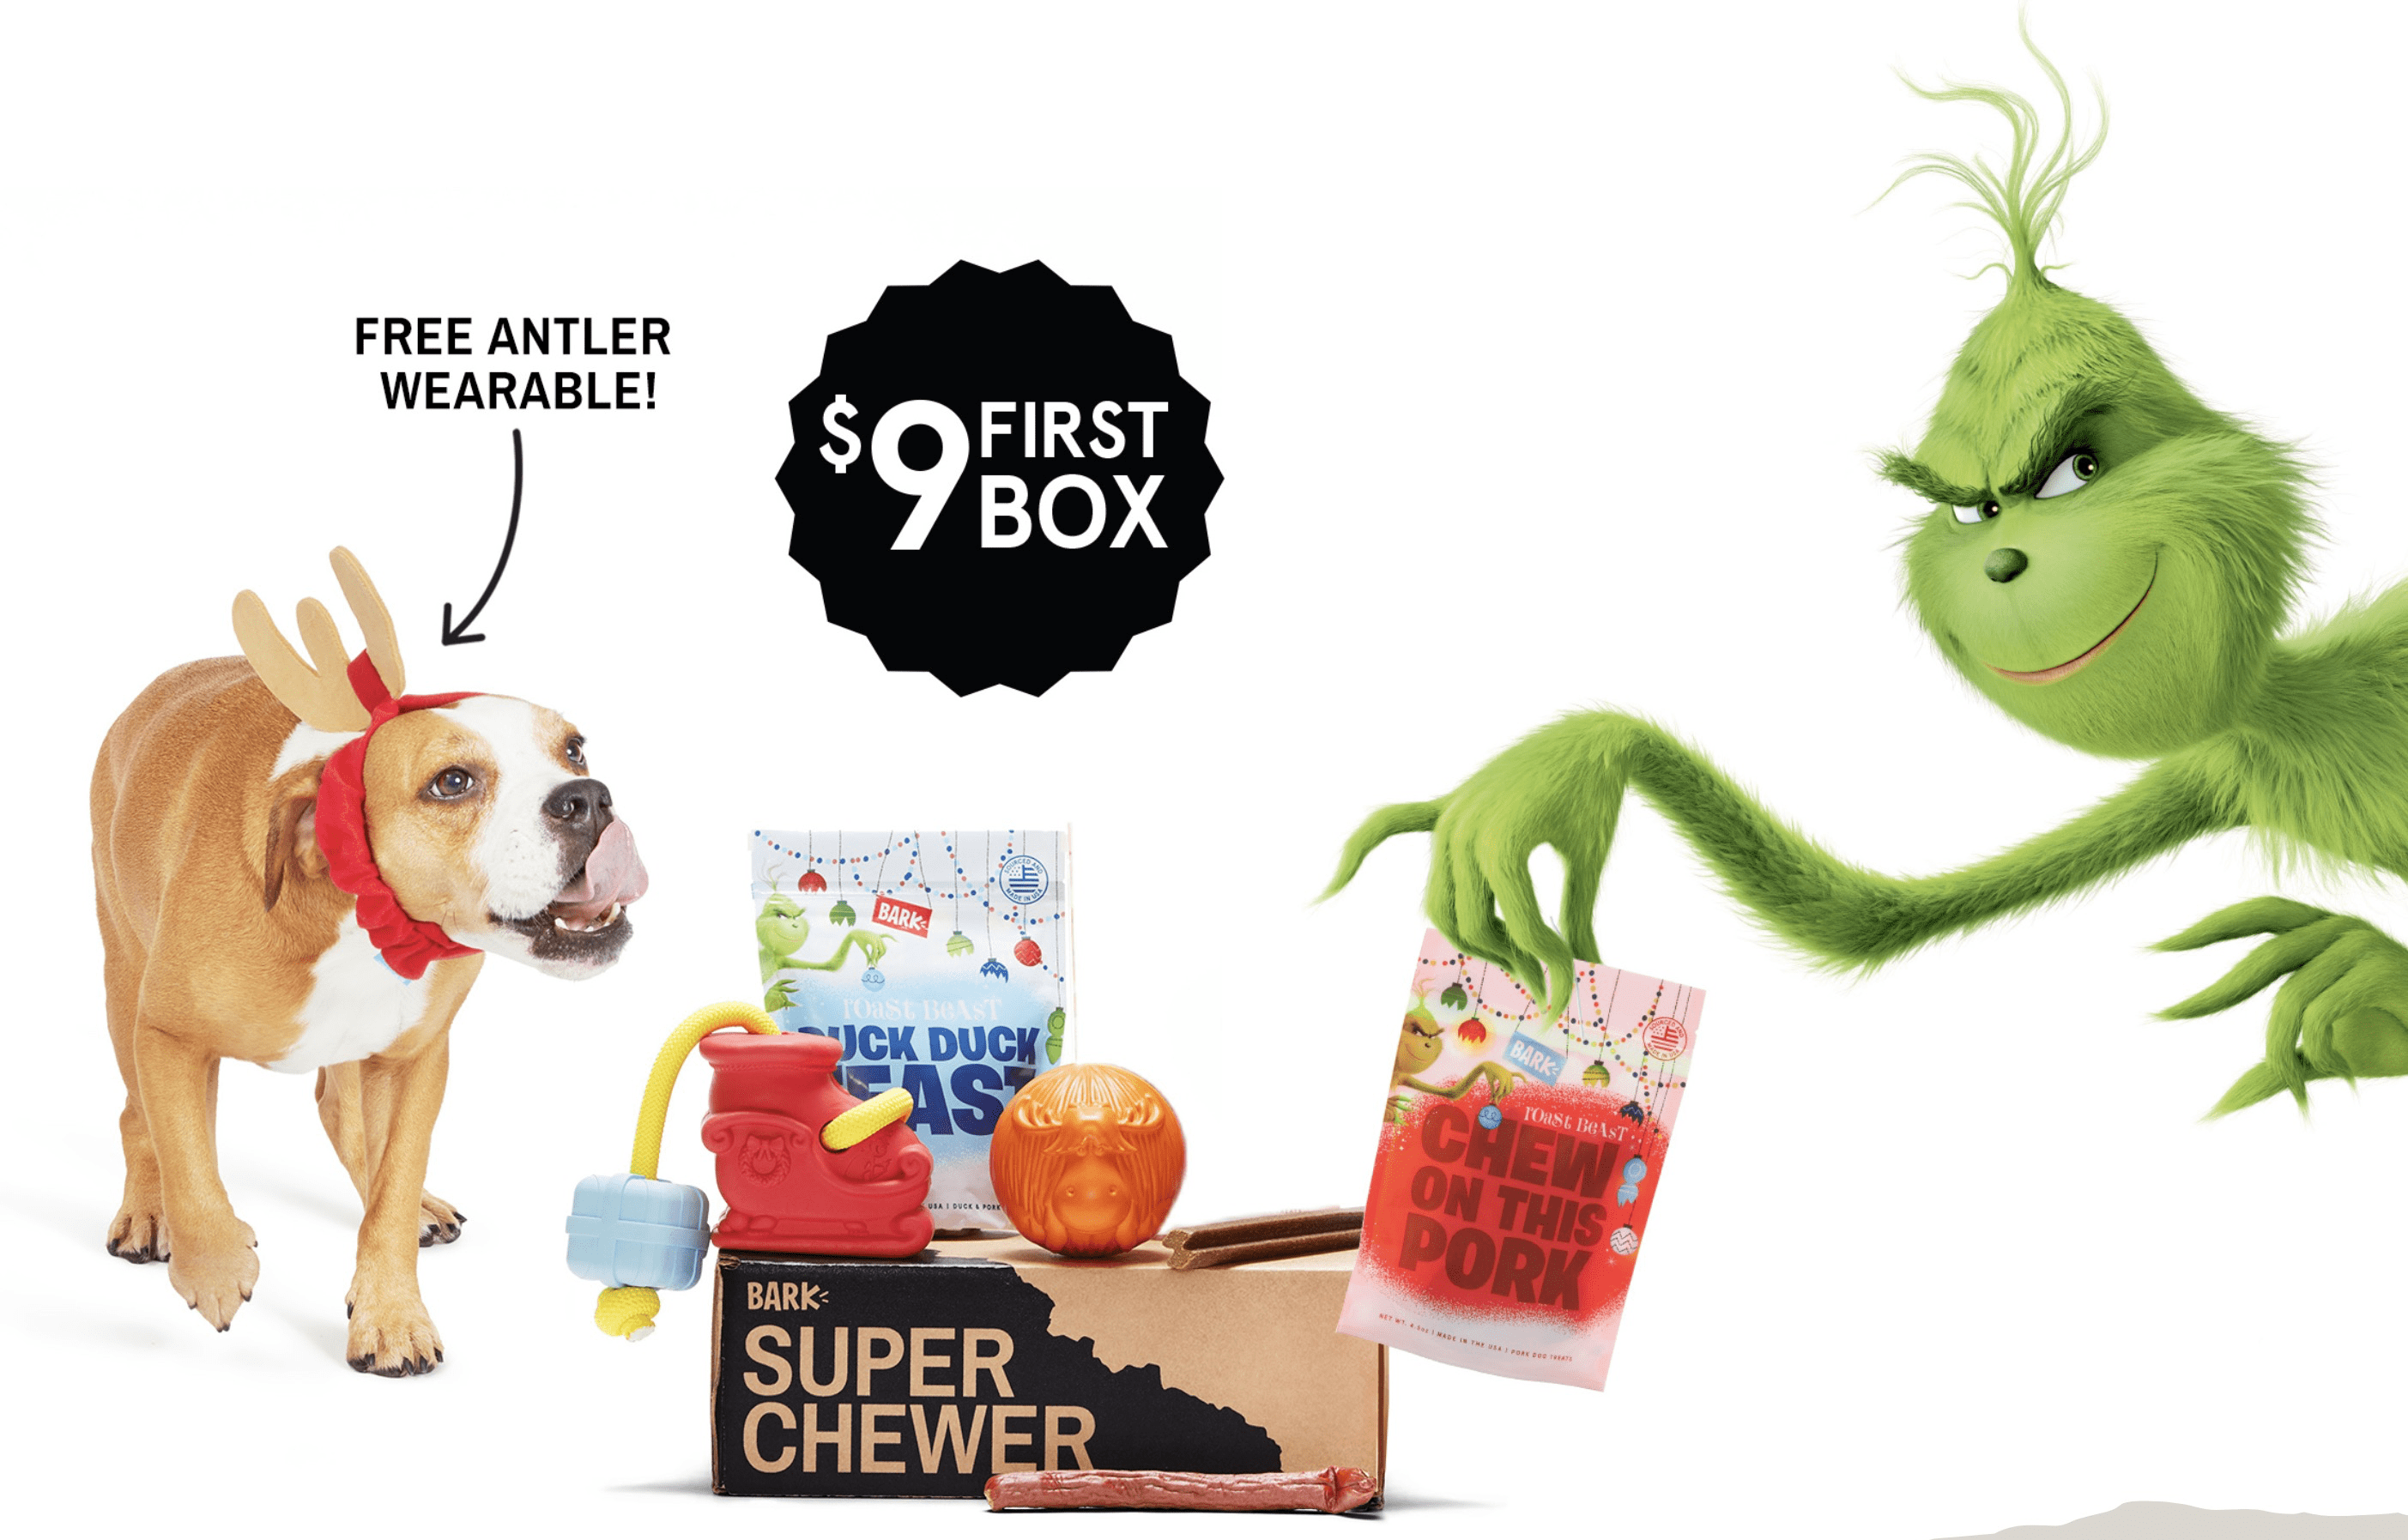 BarkBox Super Chewer Cyber Monday Deal: First Month $9 Deal + GRINCH!